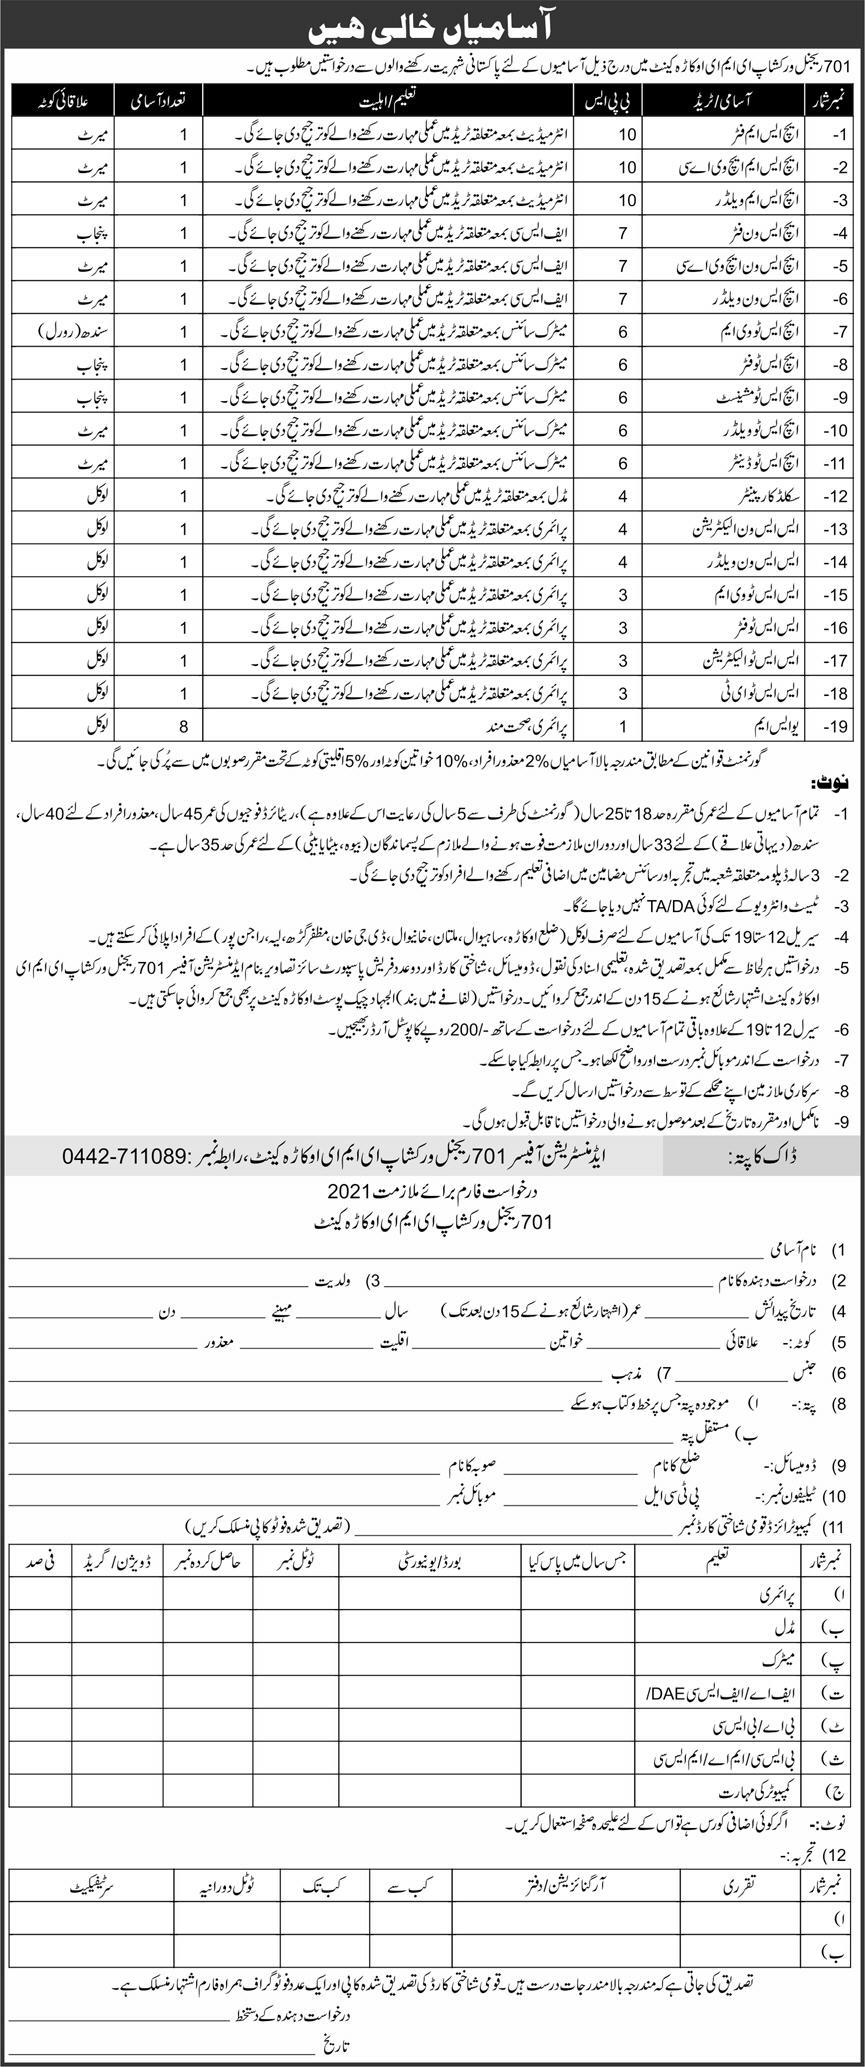 Pak Army 701 Regional Workshop EME Jobs 2021 in Pakistan - Join Pakistan Army as Civilian Jobs 2021 - How to Apply For Pak Army as Civilian Jobs 2021